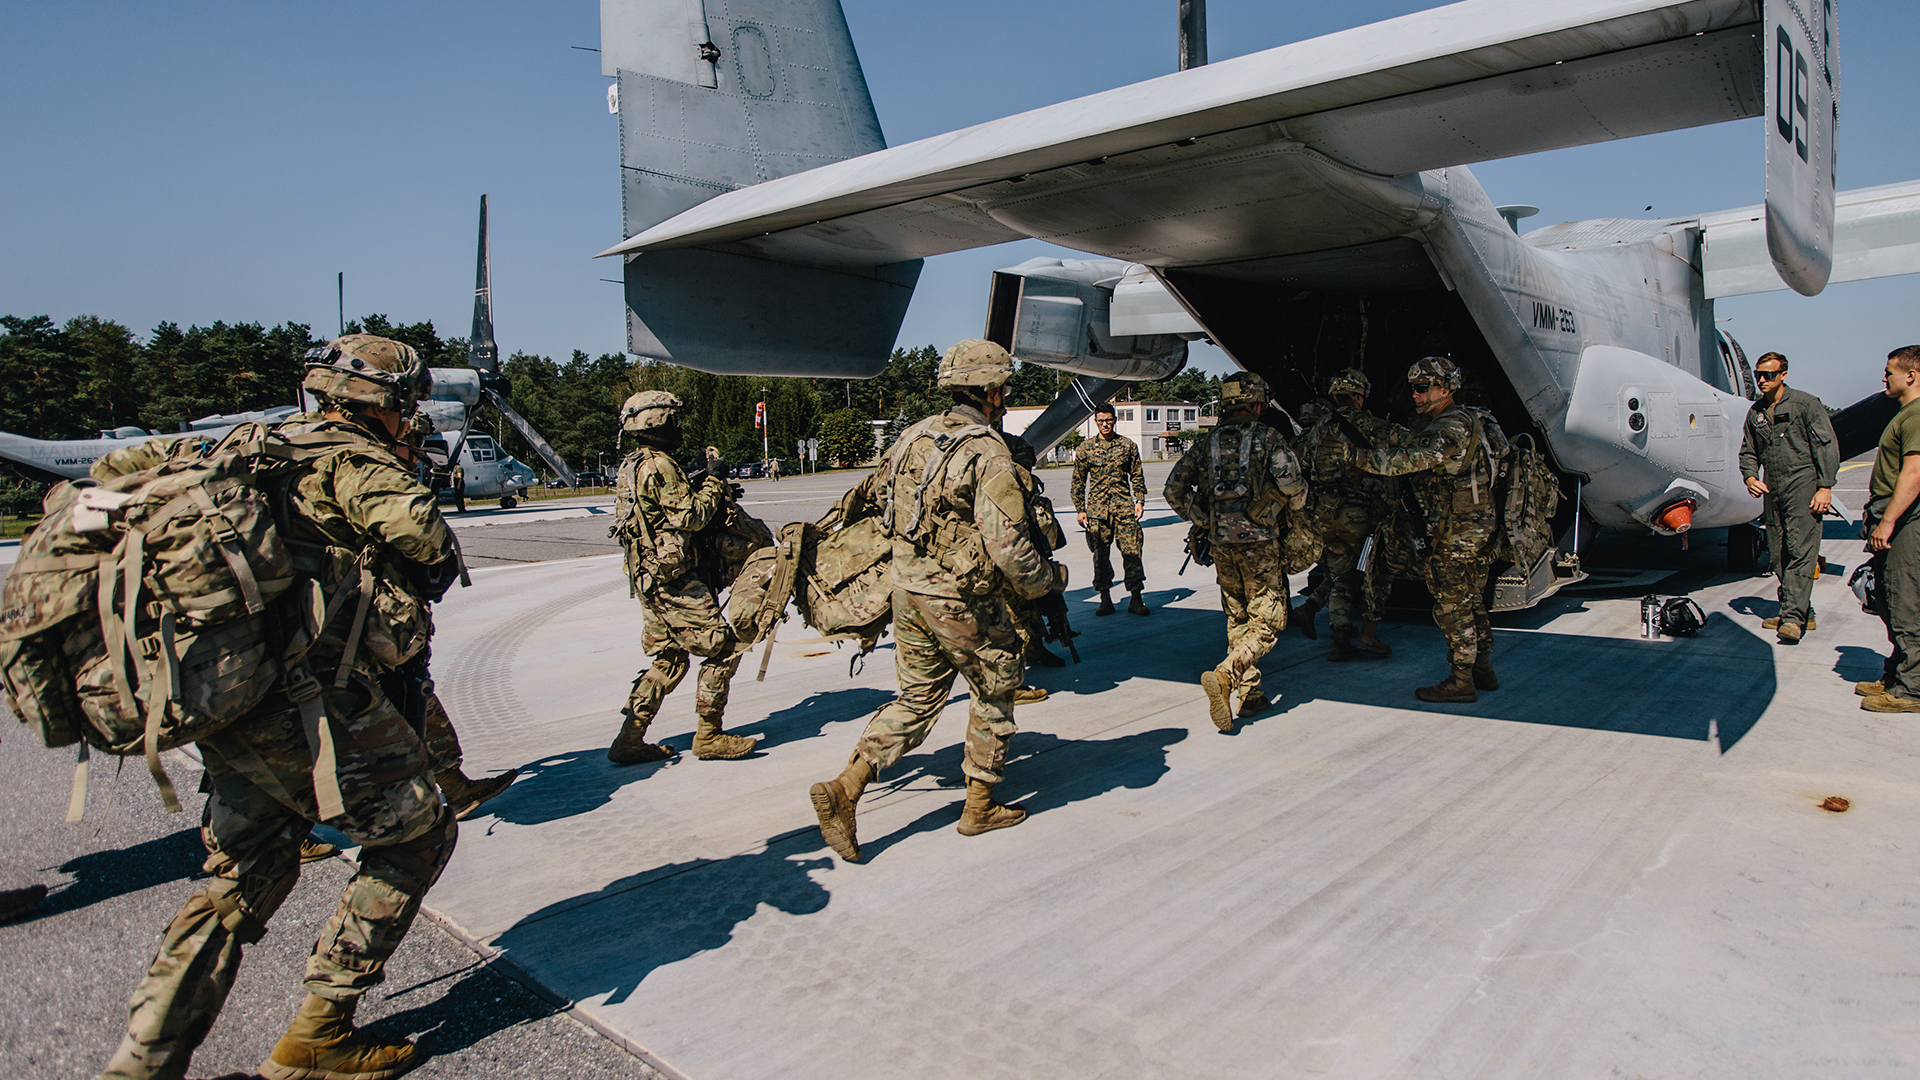 Army soldiers boarding to deploy